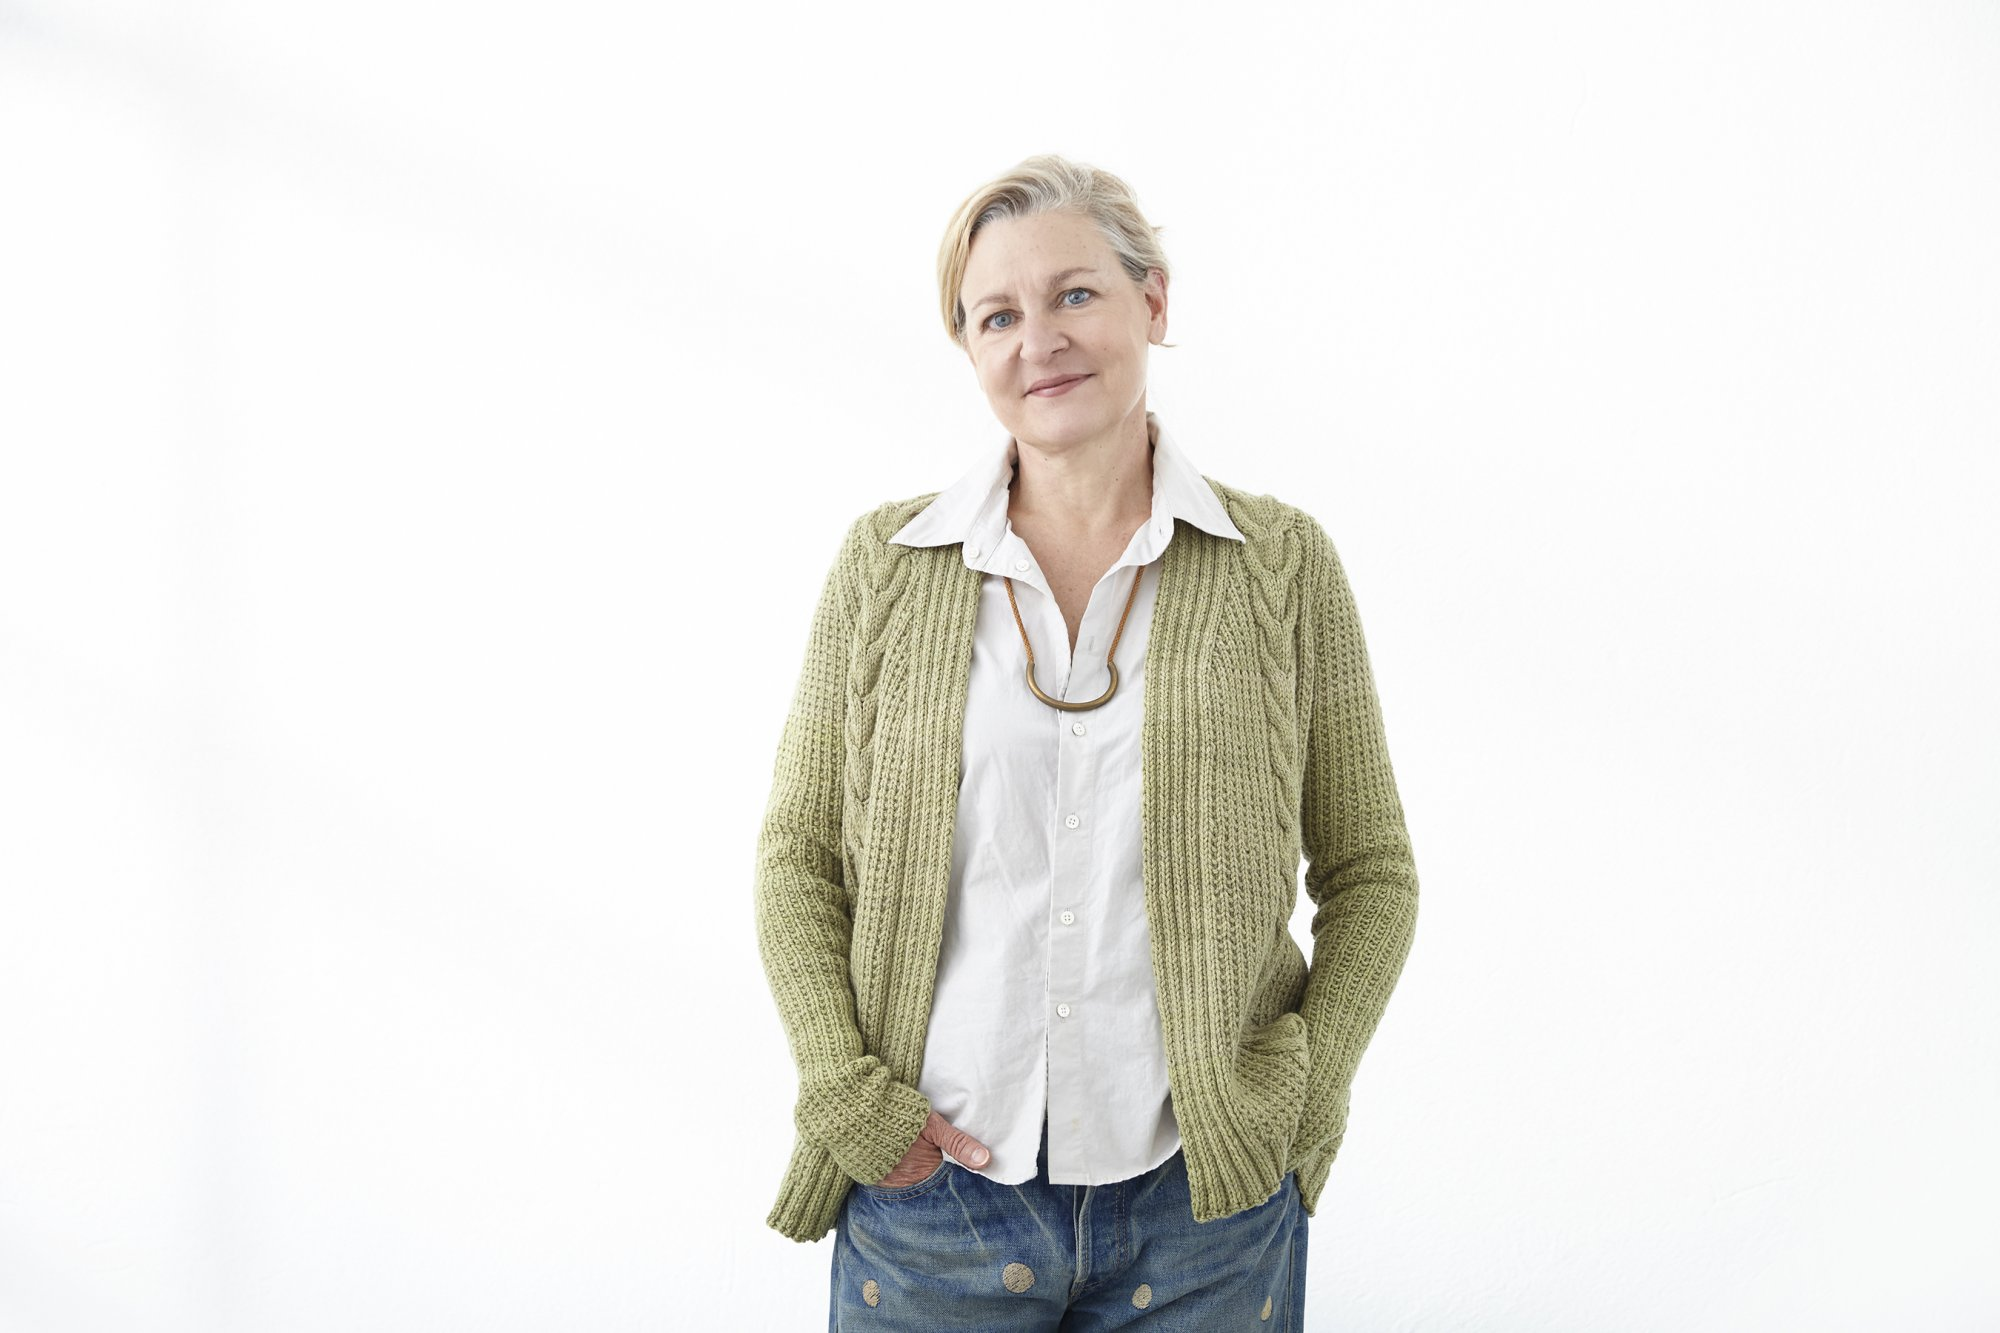 CLOSED Fiberside Chats: Julie Weisenberger of Cocoknits Saturday January 9th